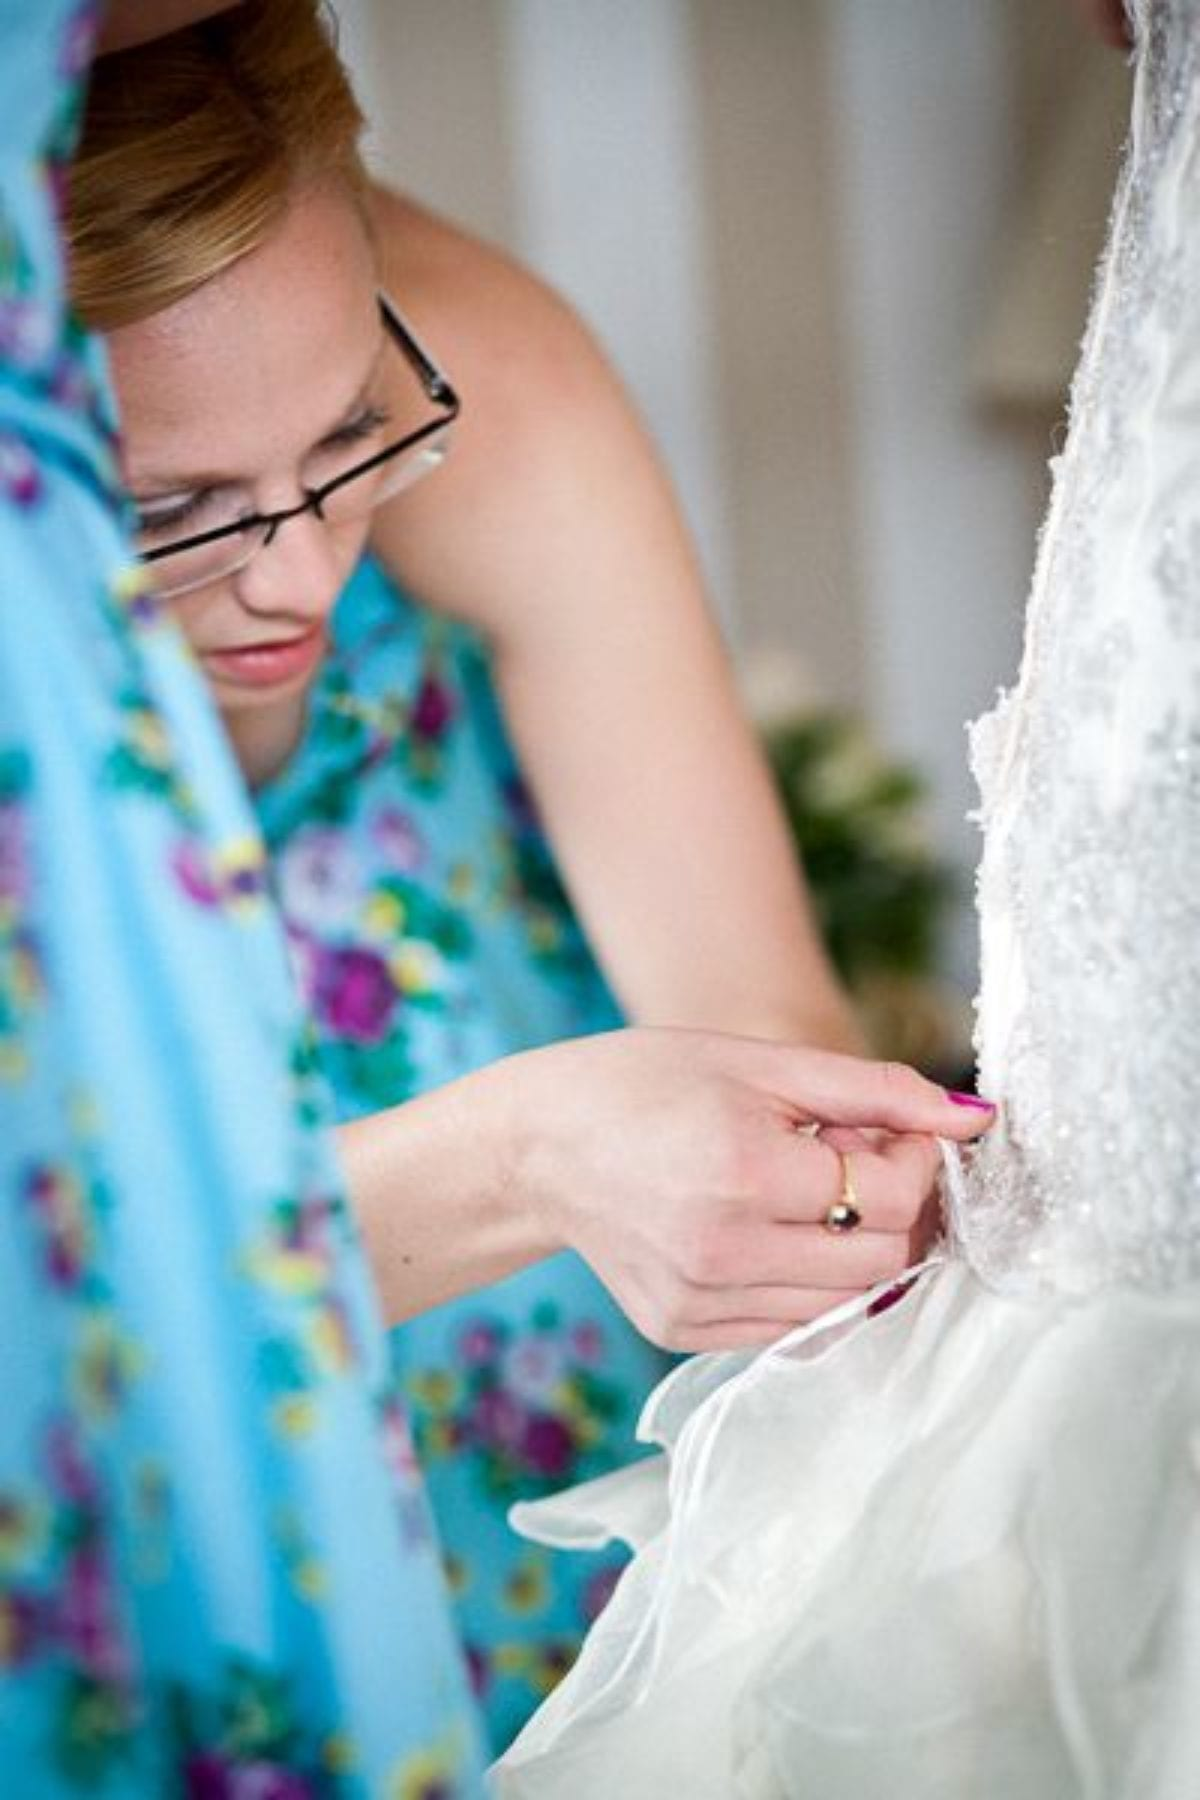 last fixes of the wedding dress